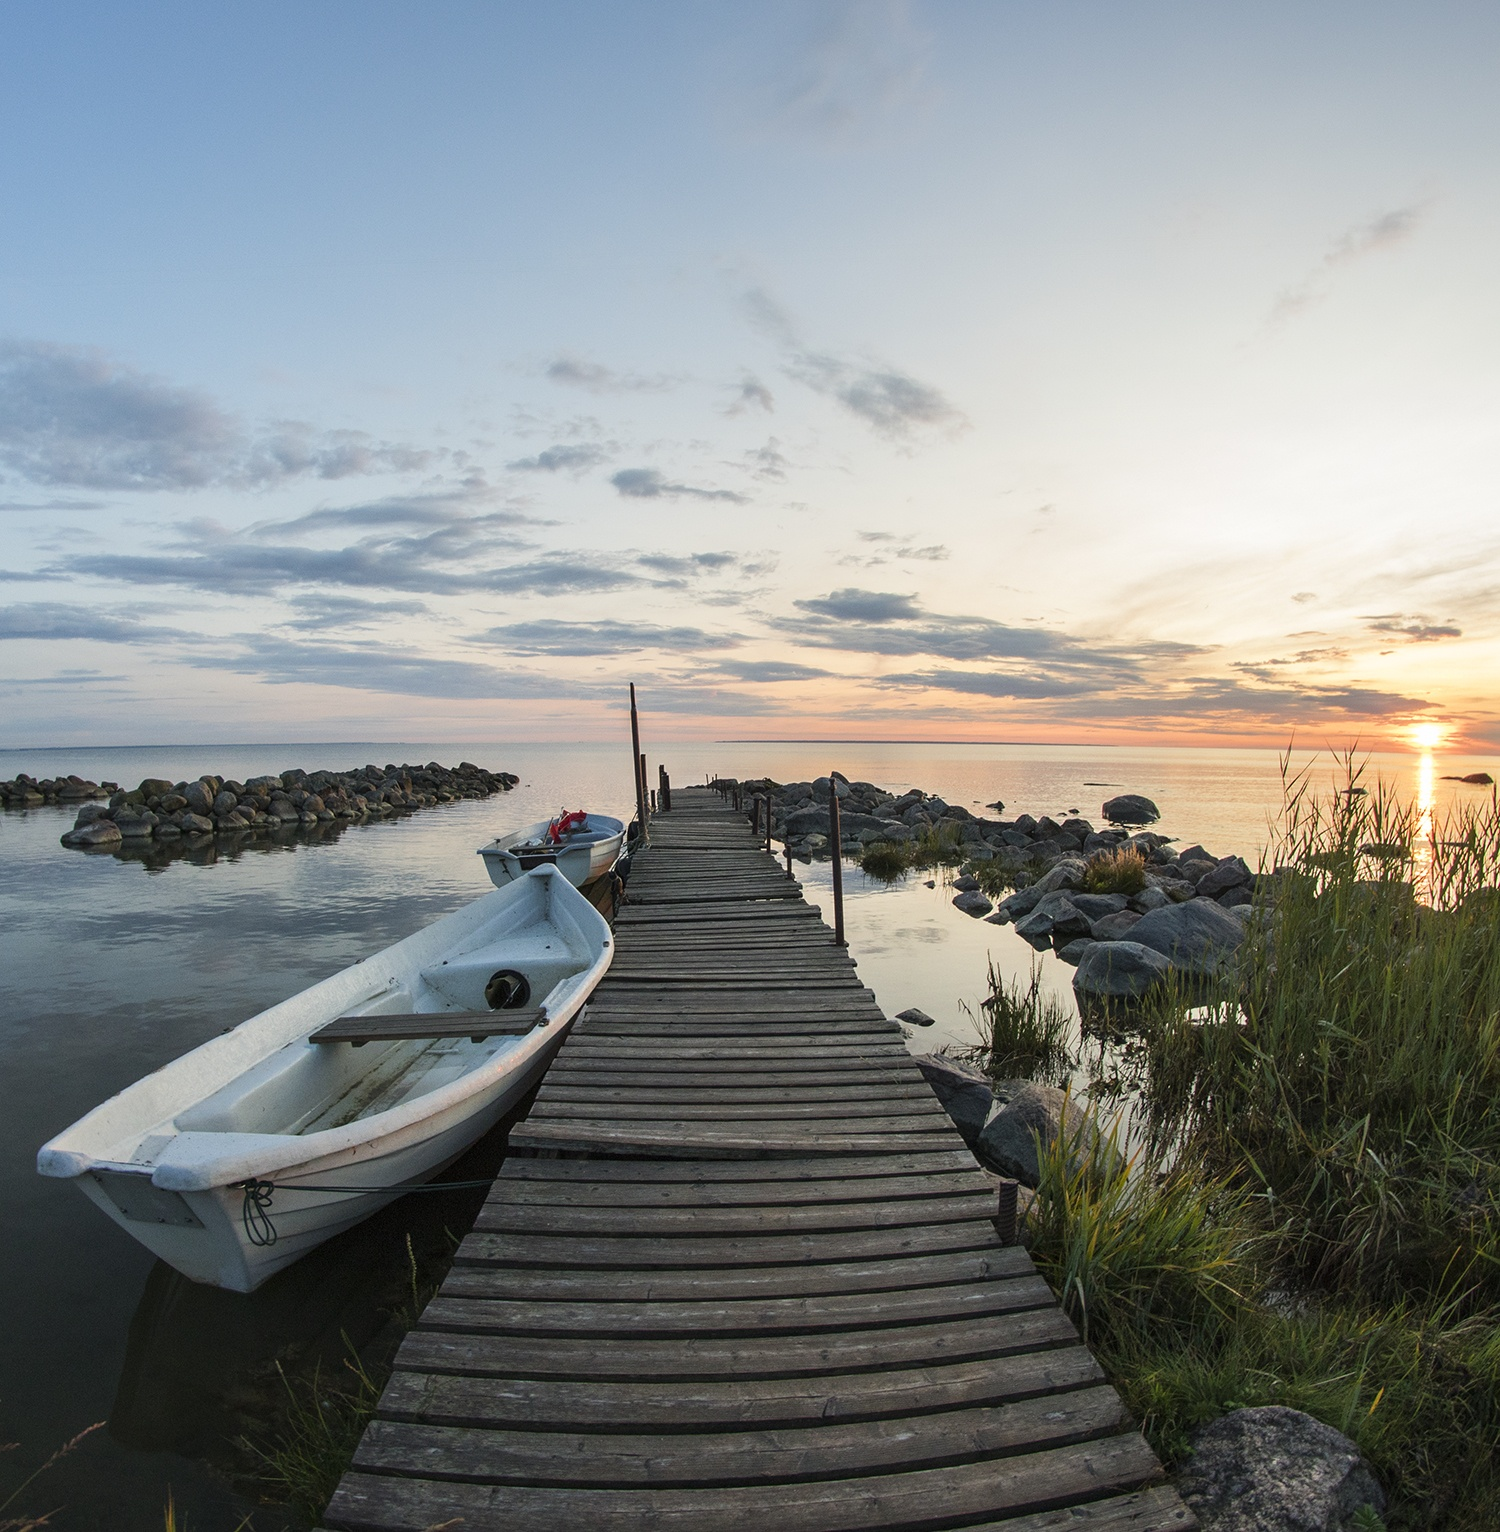 Boat, Baltic Sea and sunset in Viimsi, Estonia